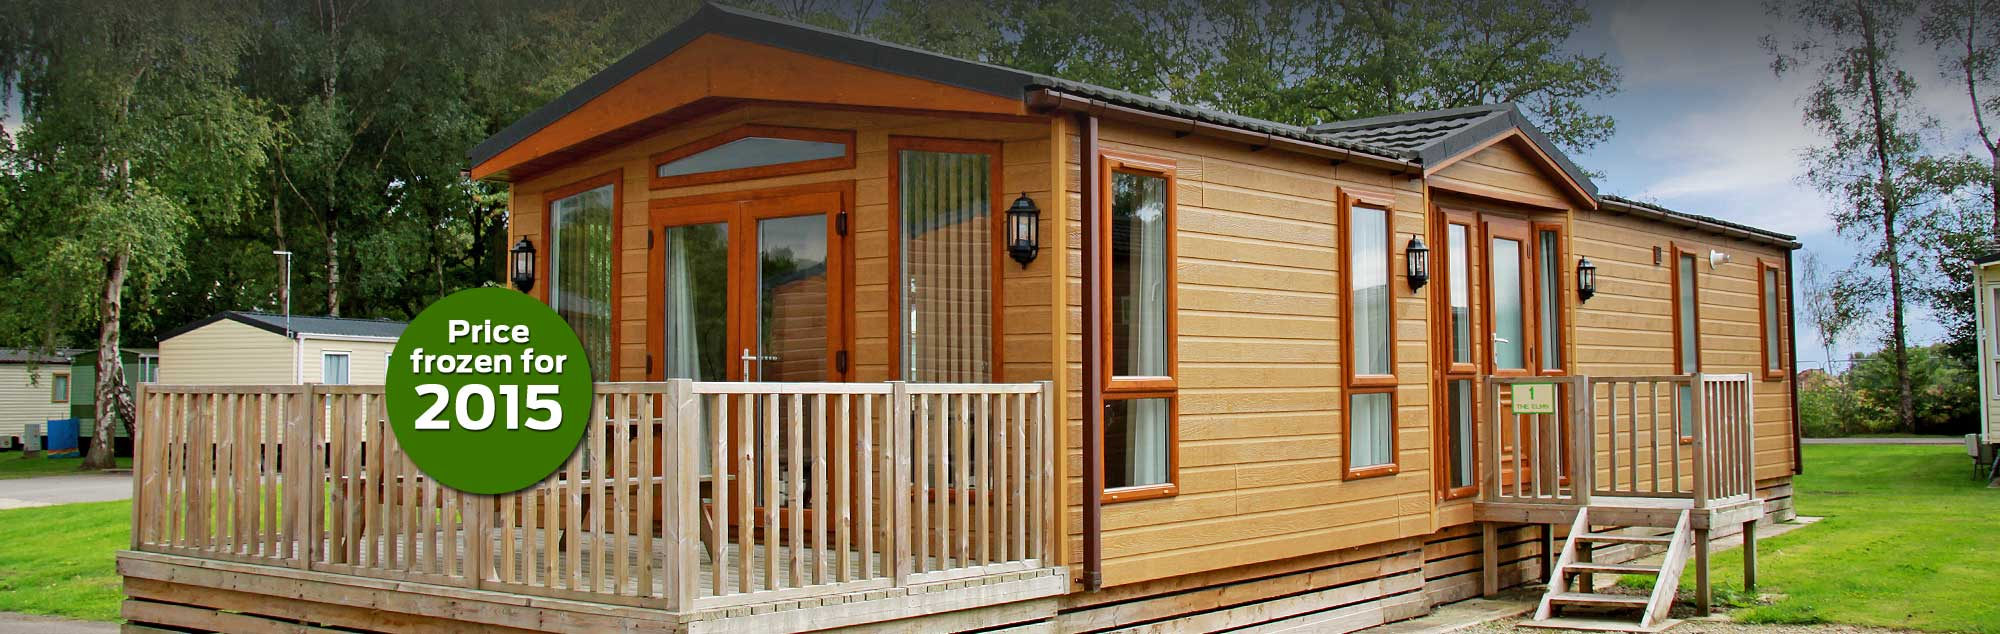 Lodge holidays in York - Prices frozen for 2015